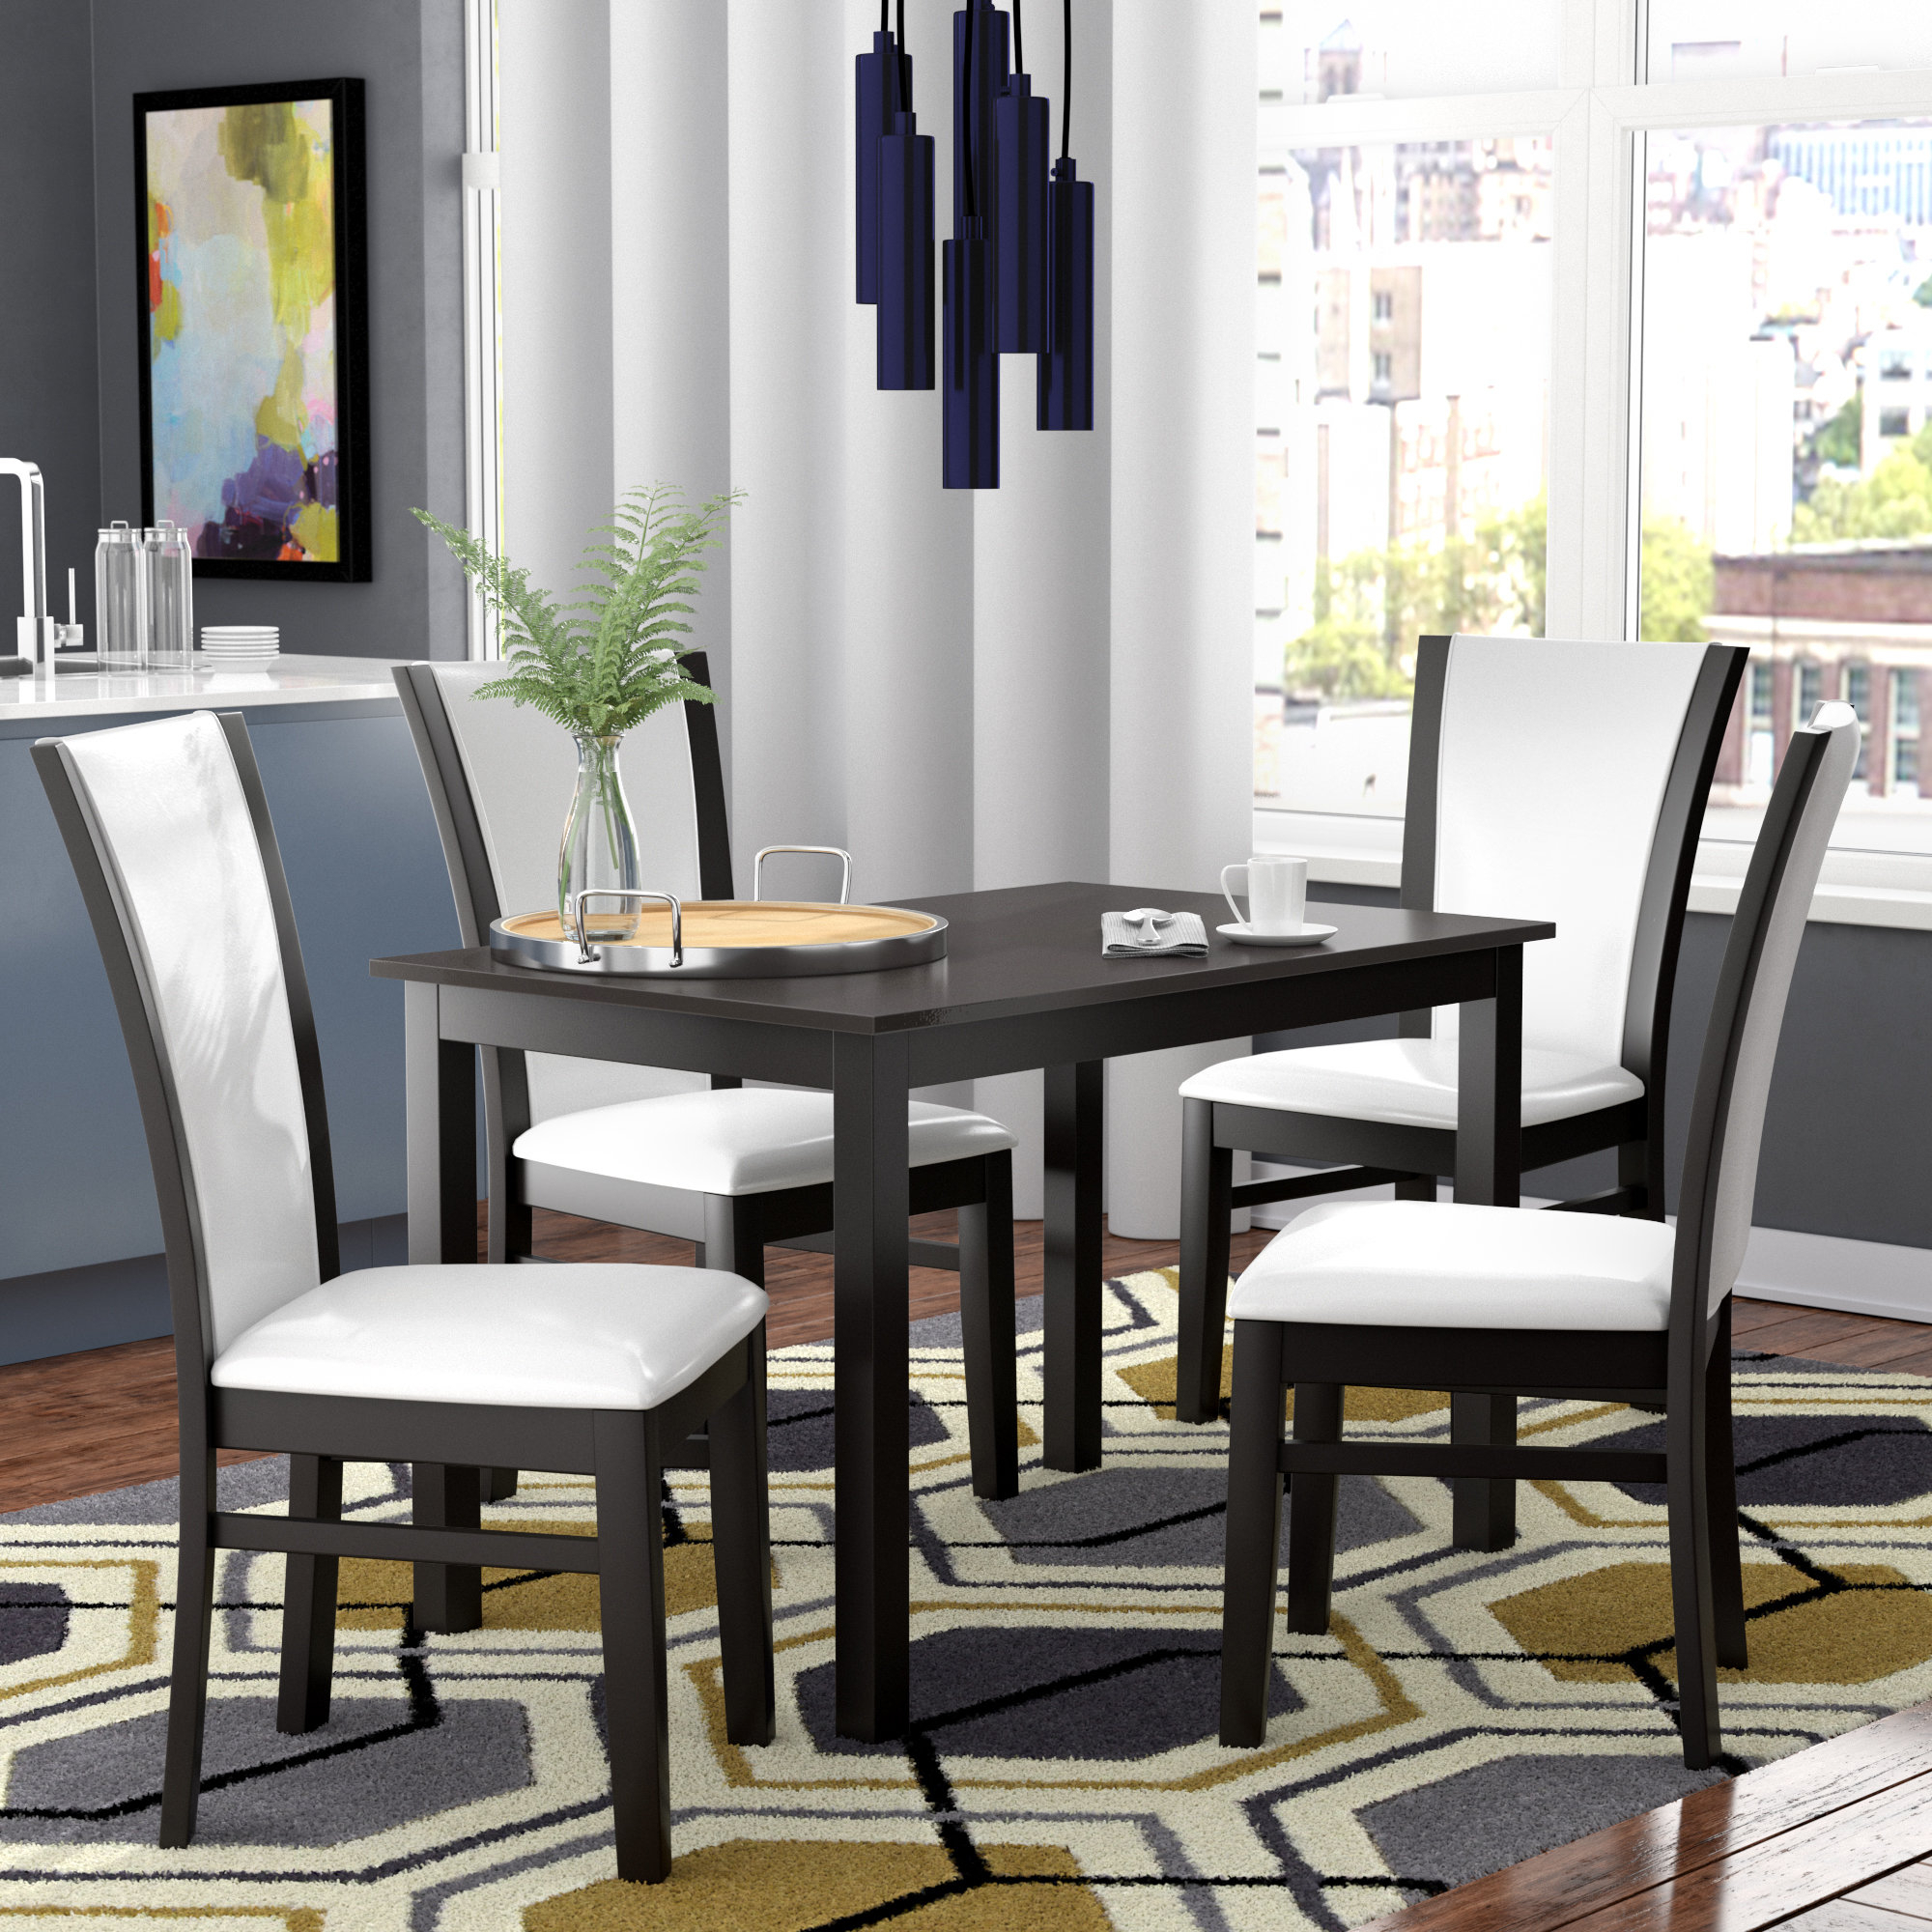 5 Piece Breakfast Nook Dining Sets Within Well Known Ontonagon Modern And Contemporary 5 Piece Breakfast Nook Dining Set (View 4 of 20)